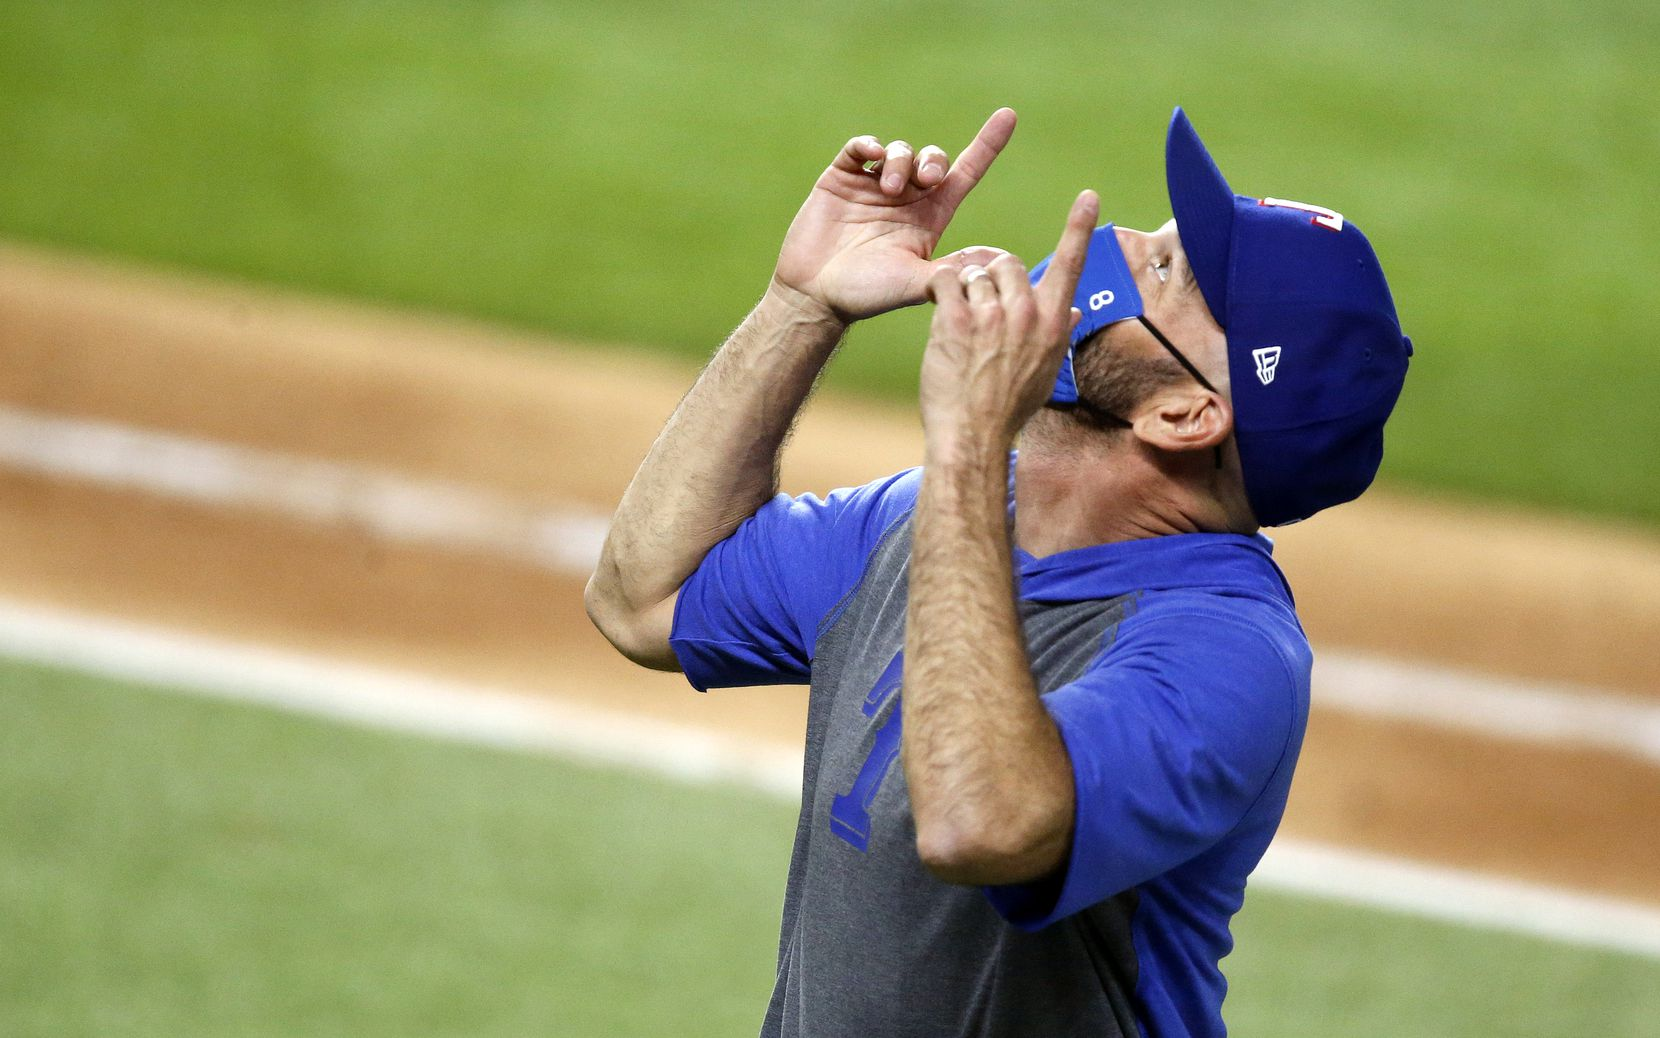 Texas Rangers manager Chris Woodward points skyward in relief after finally getting a win.  The Rangers defeated the Los Angeles Angels, 7-1, at Globe Life Field in Arlington, Texas, Tuesday, September 8, 2020. (Tom Fox/The Dallas Morning News)